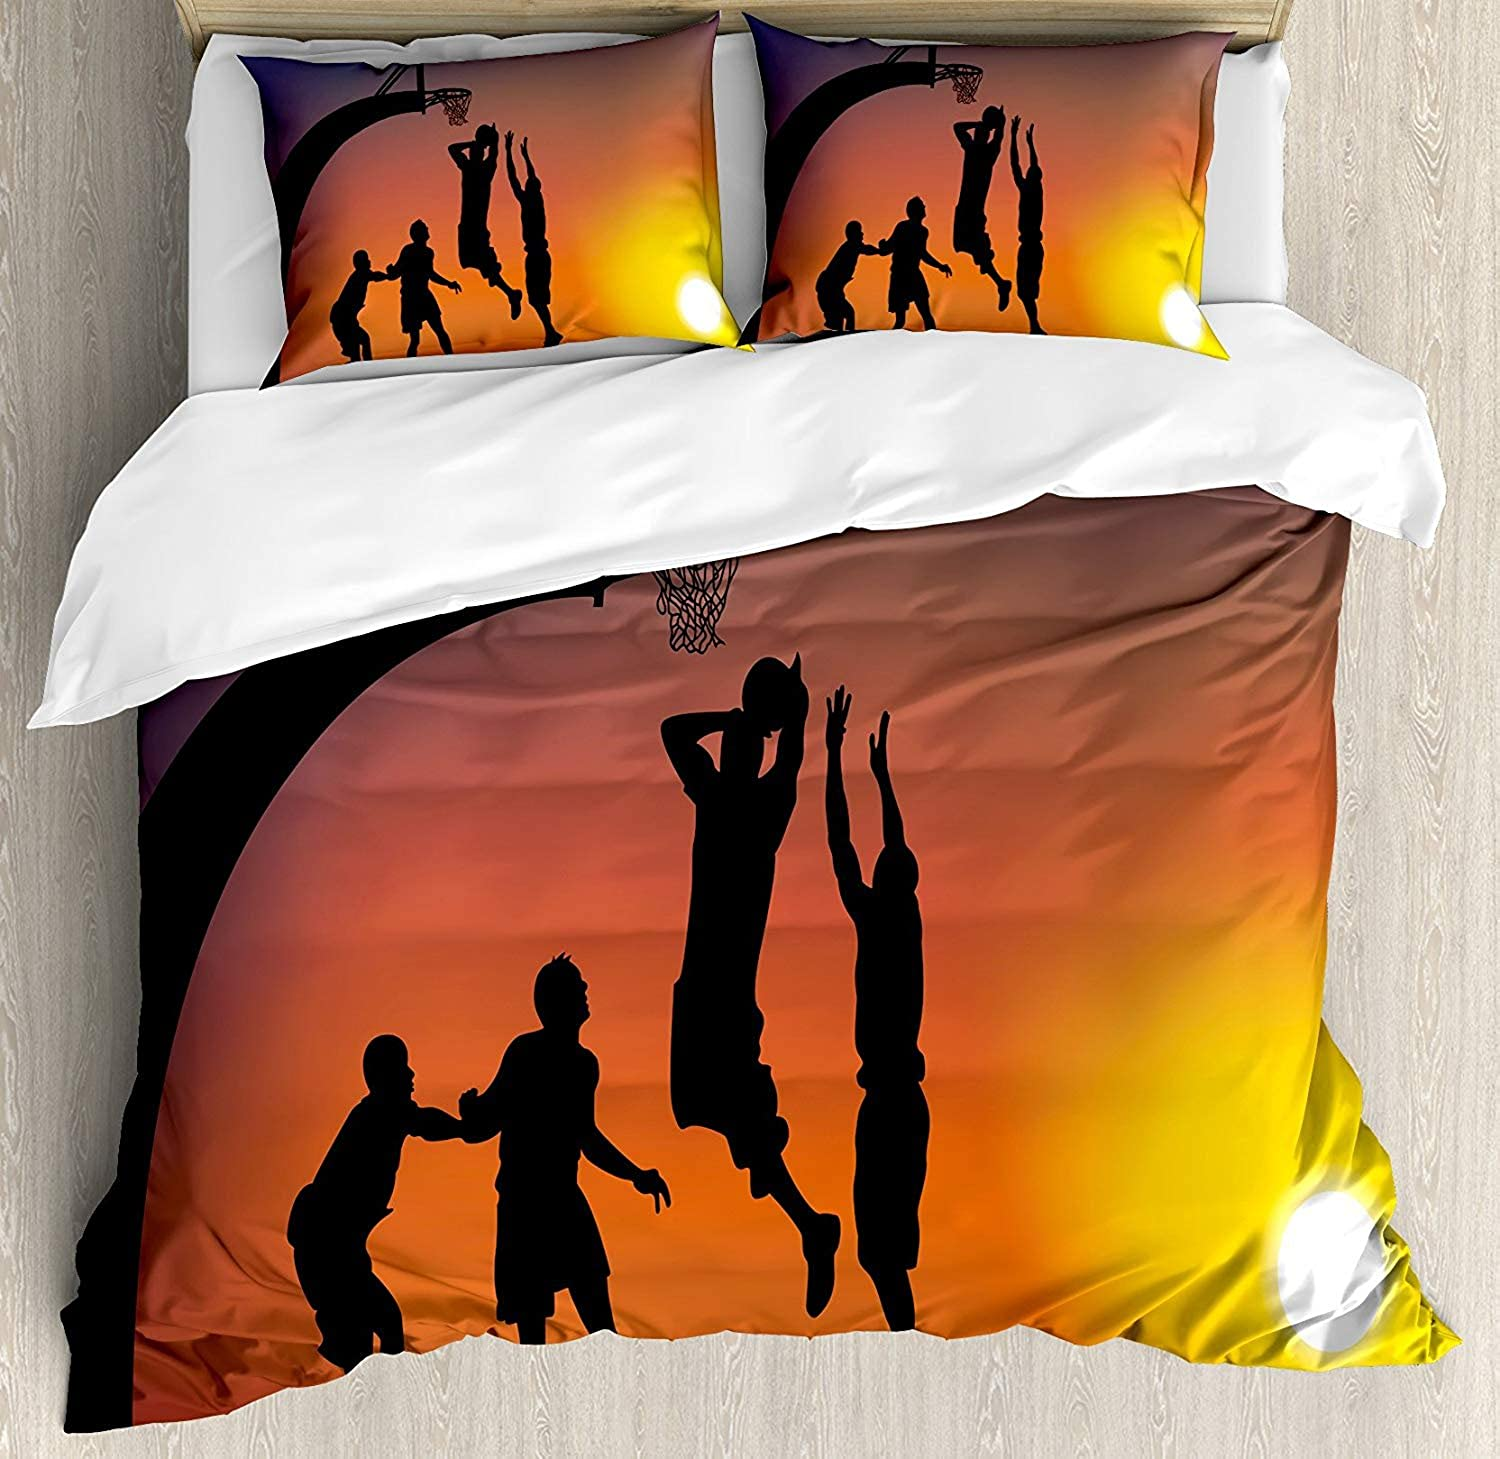 Interhear Teen Room Decor 4 Piece Bedding Printed Duvet Cover Set Twin, Luxury Soft Brushed Microfiber for Hotel Bedroom, Boys Playing Basketball at Sunset Horizon Sky Dramatic Scene